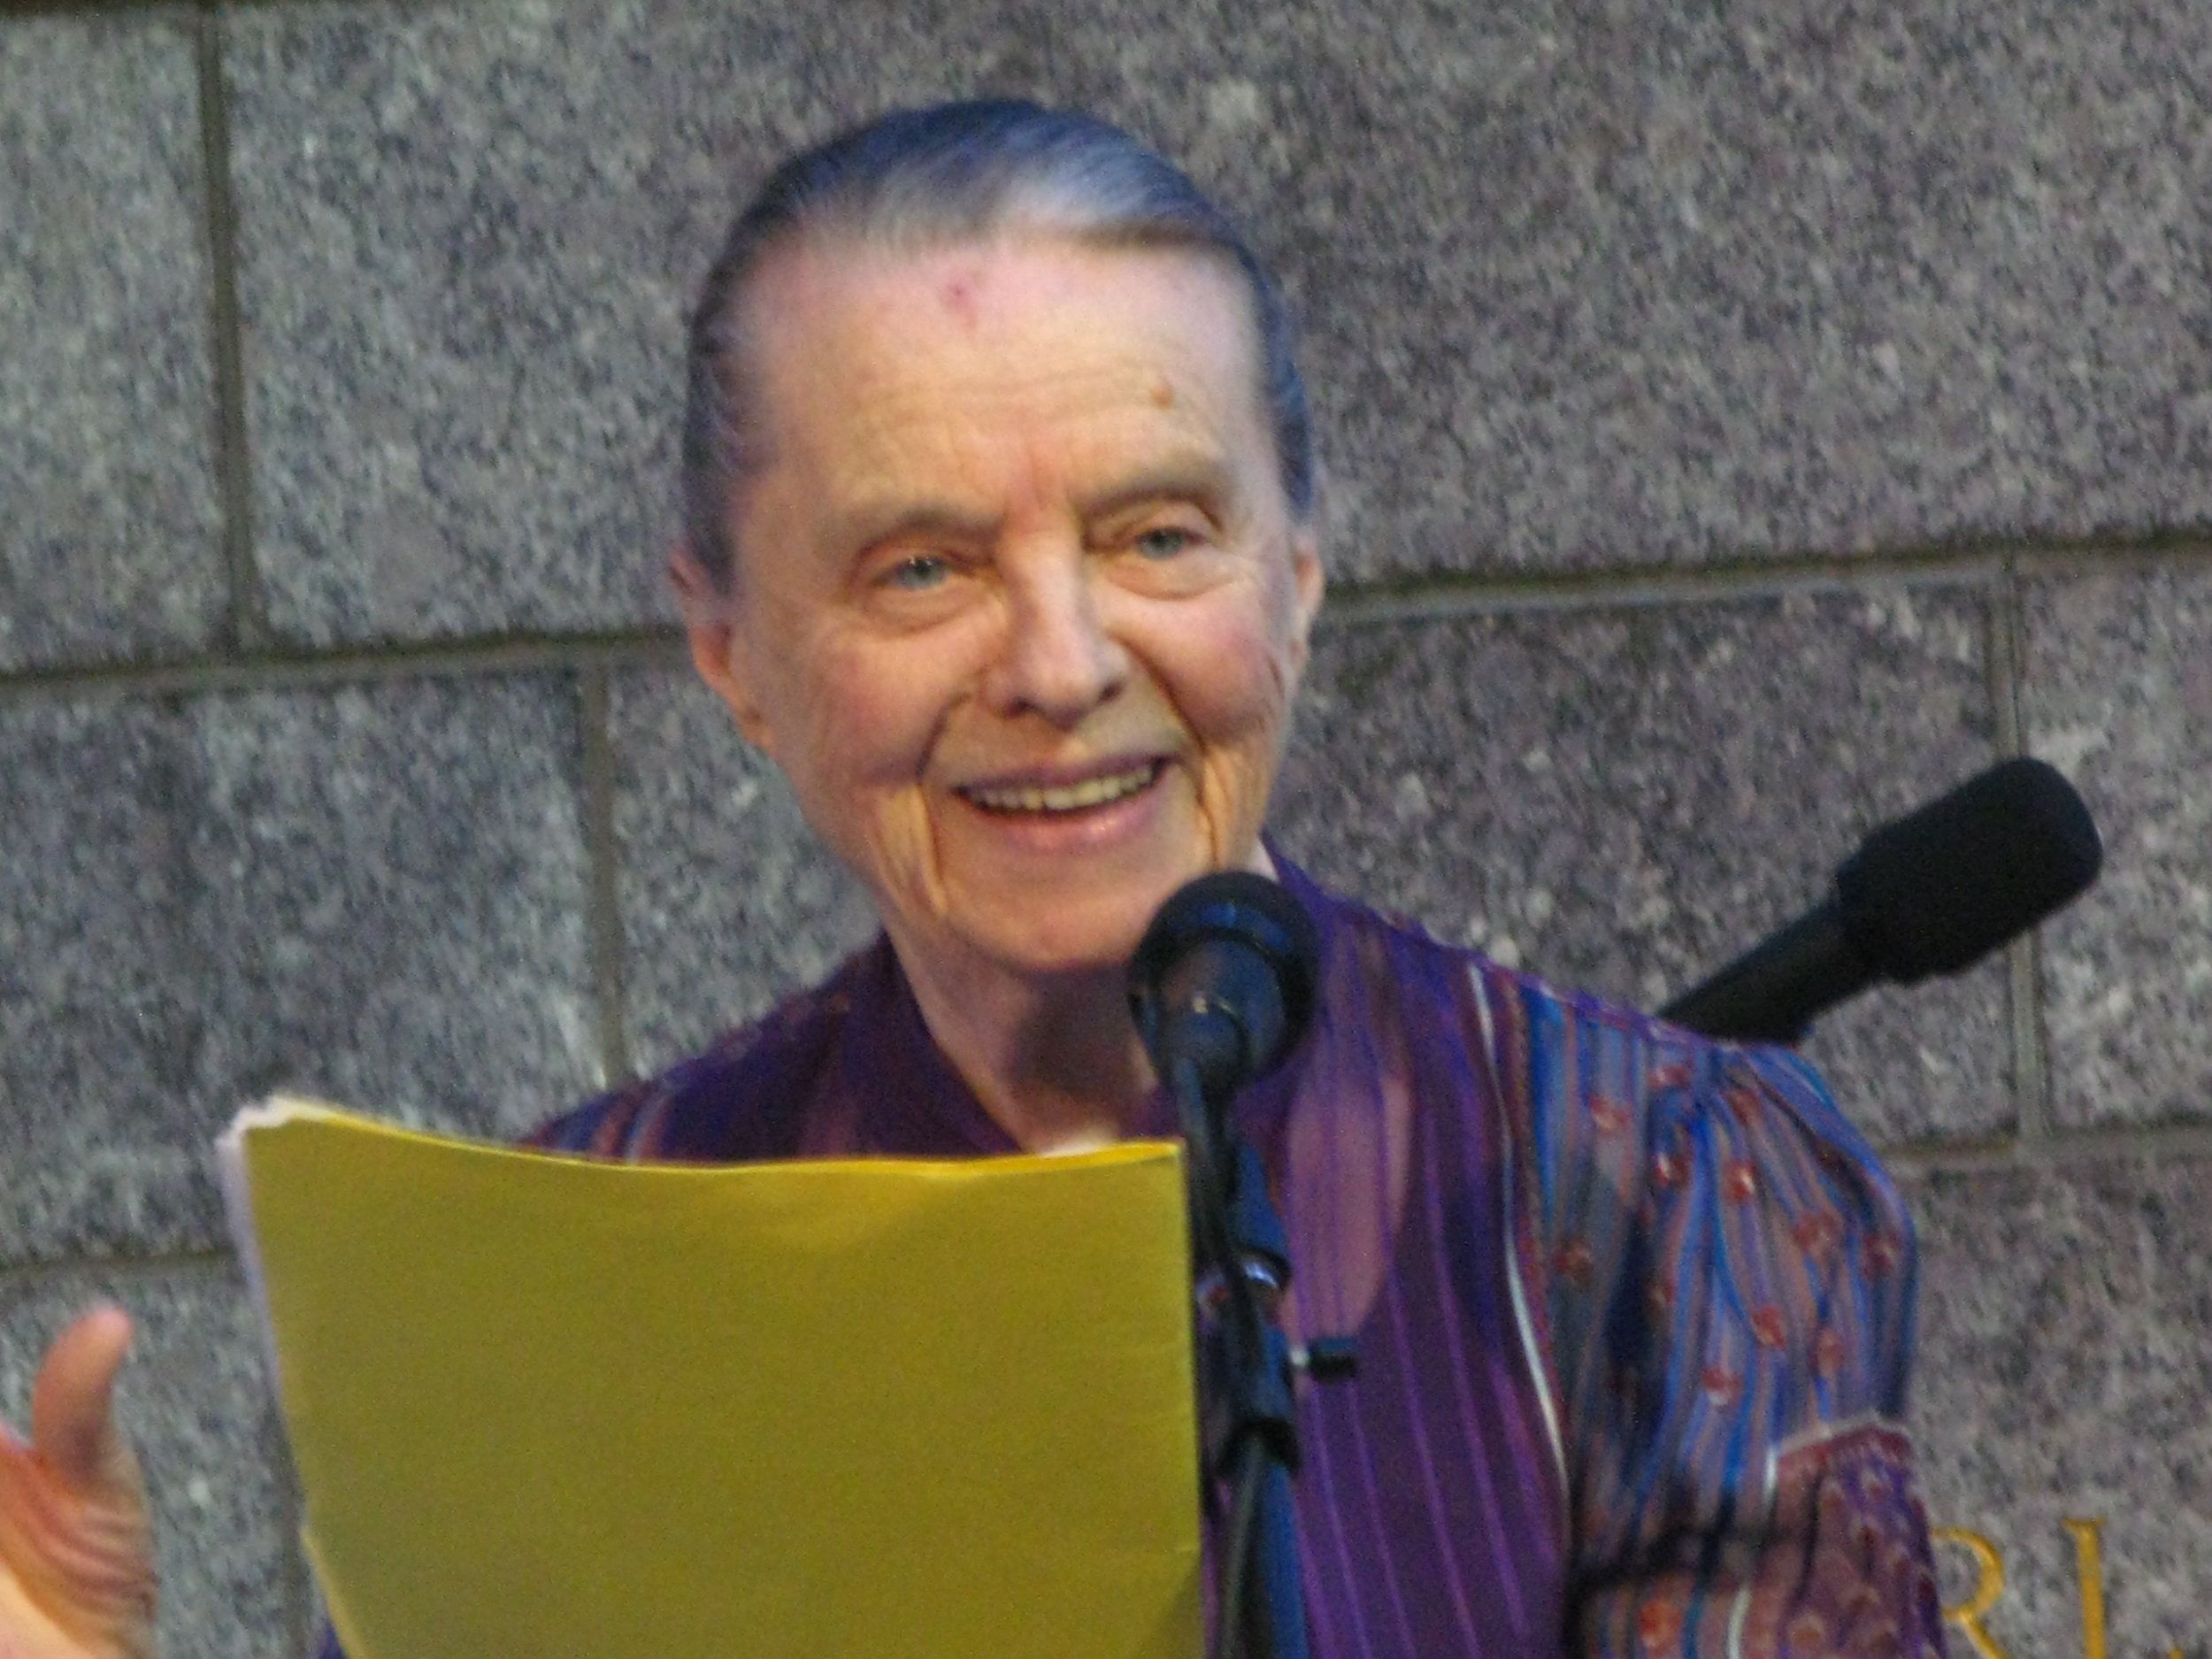 Marie Ponsot in Bryant Park, New York City  April 6, 1921 — July 5, 2019  photo courtesy of Josh Mizrahi